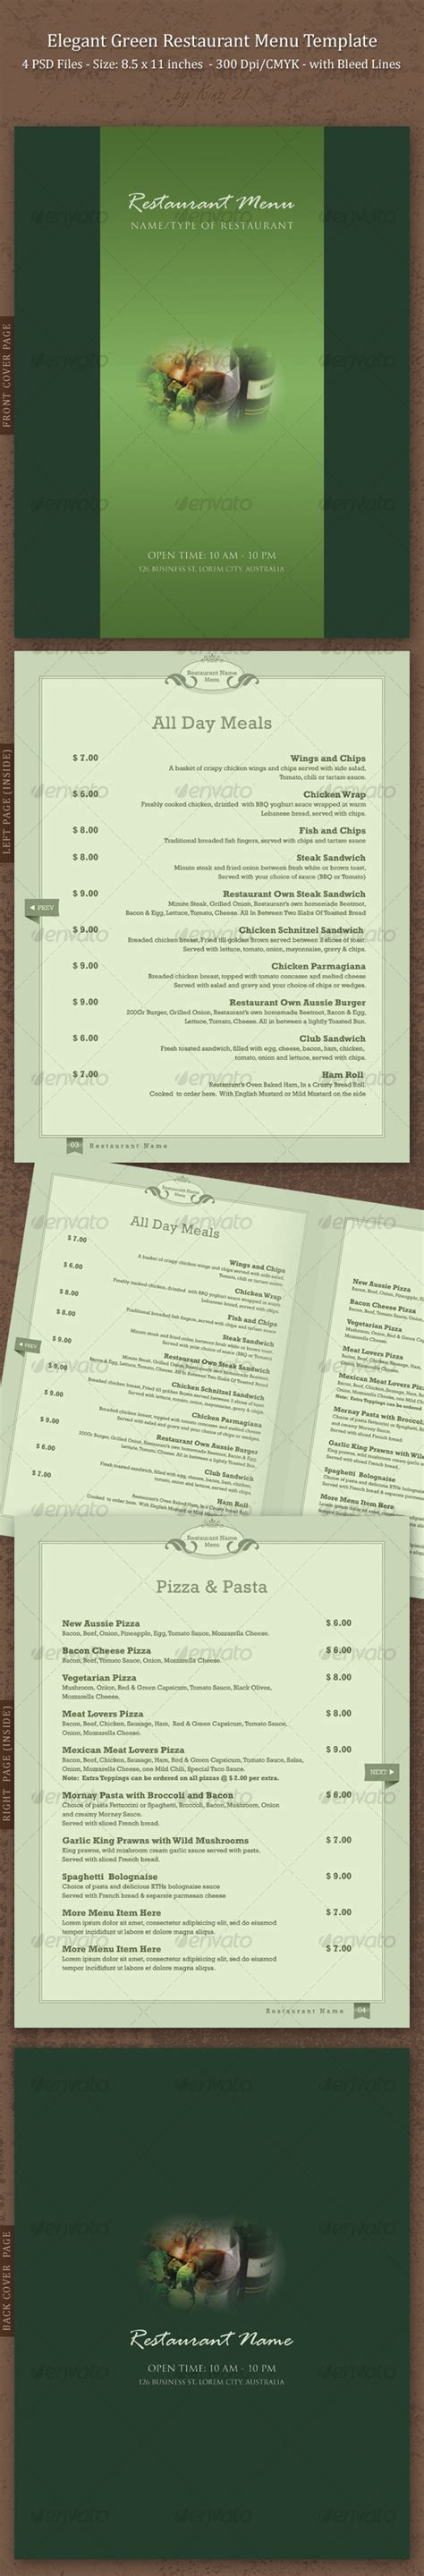 menu template indesign menu template indesign